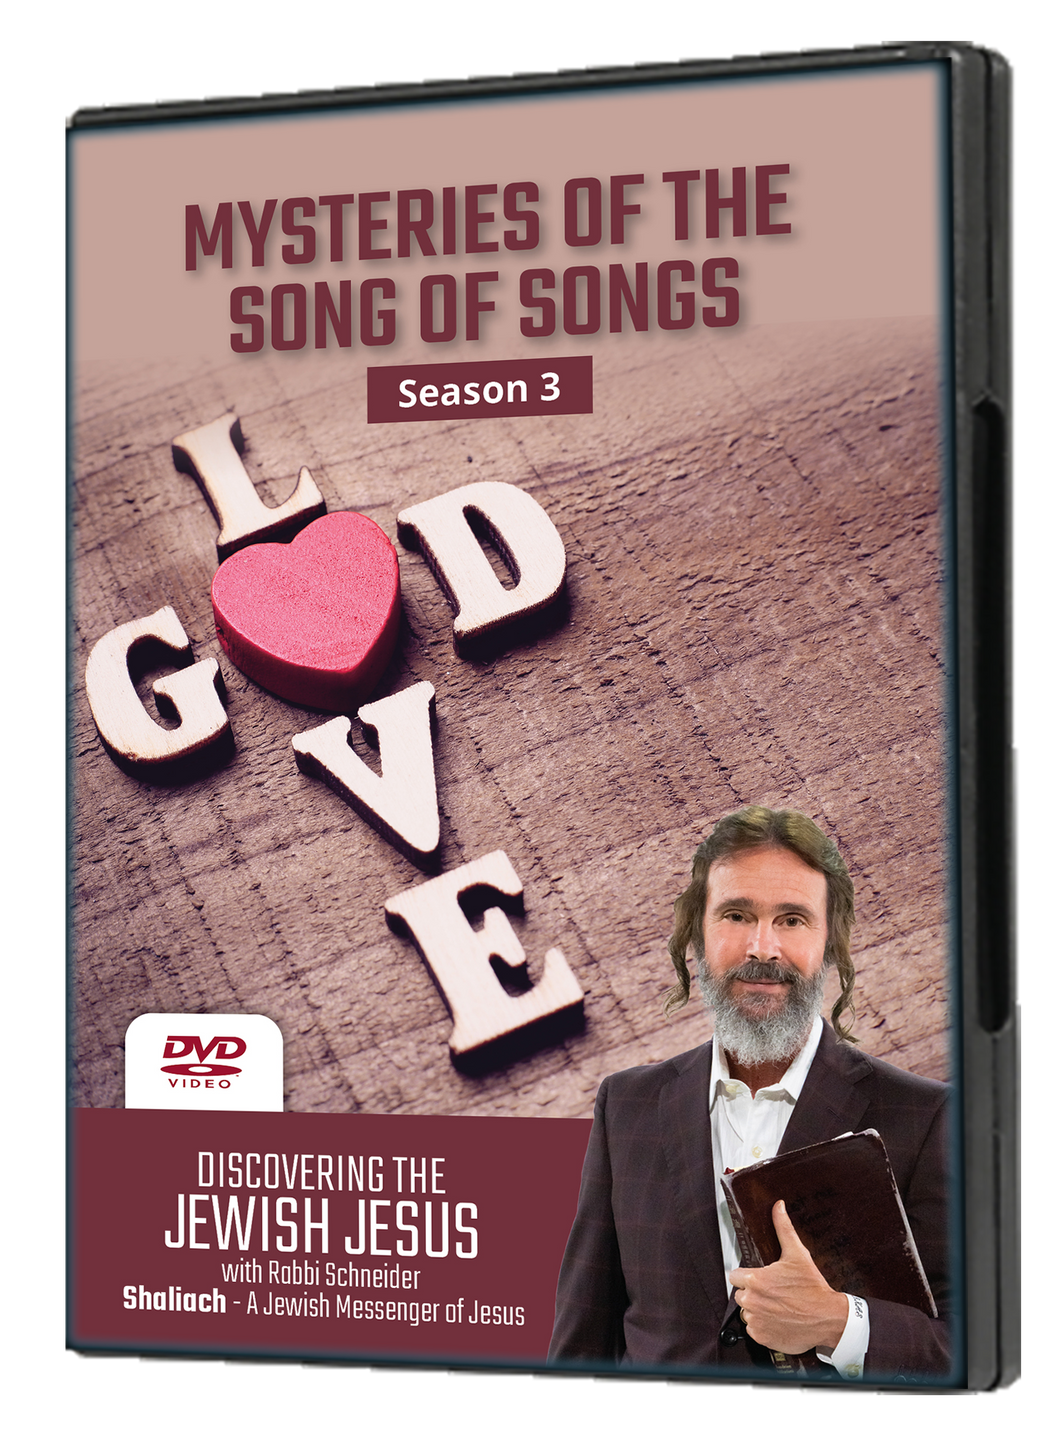 Mysteries of the Song of Songs Season 3